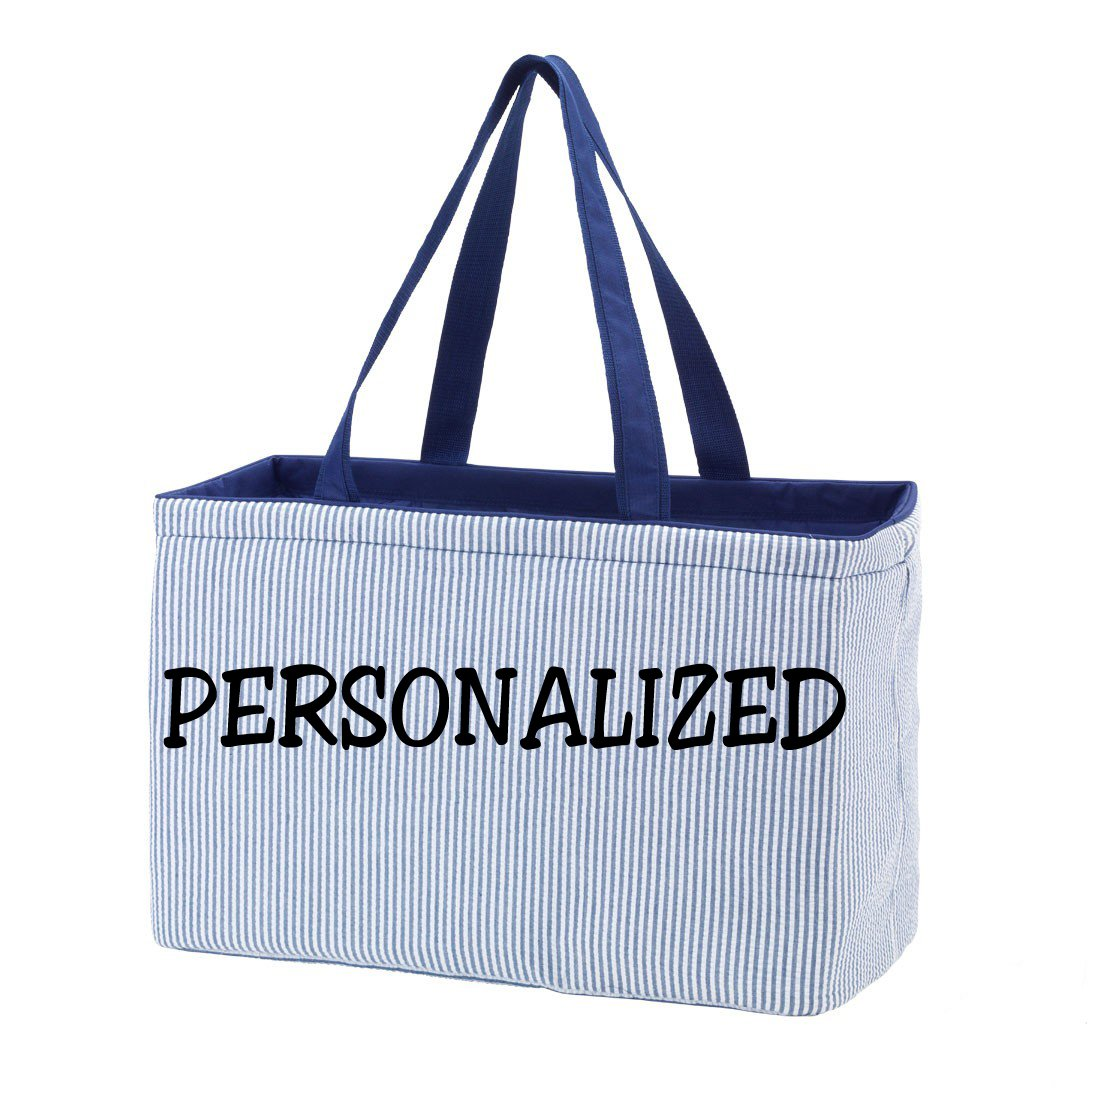 Fashion Print Ultimate Tote - Carry All Organizer Bag - A Tailgate MustCan Be Personalized (Personalized, Navy Seersucker)